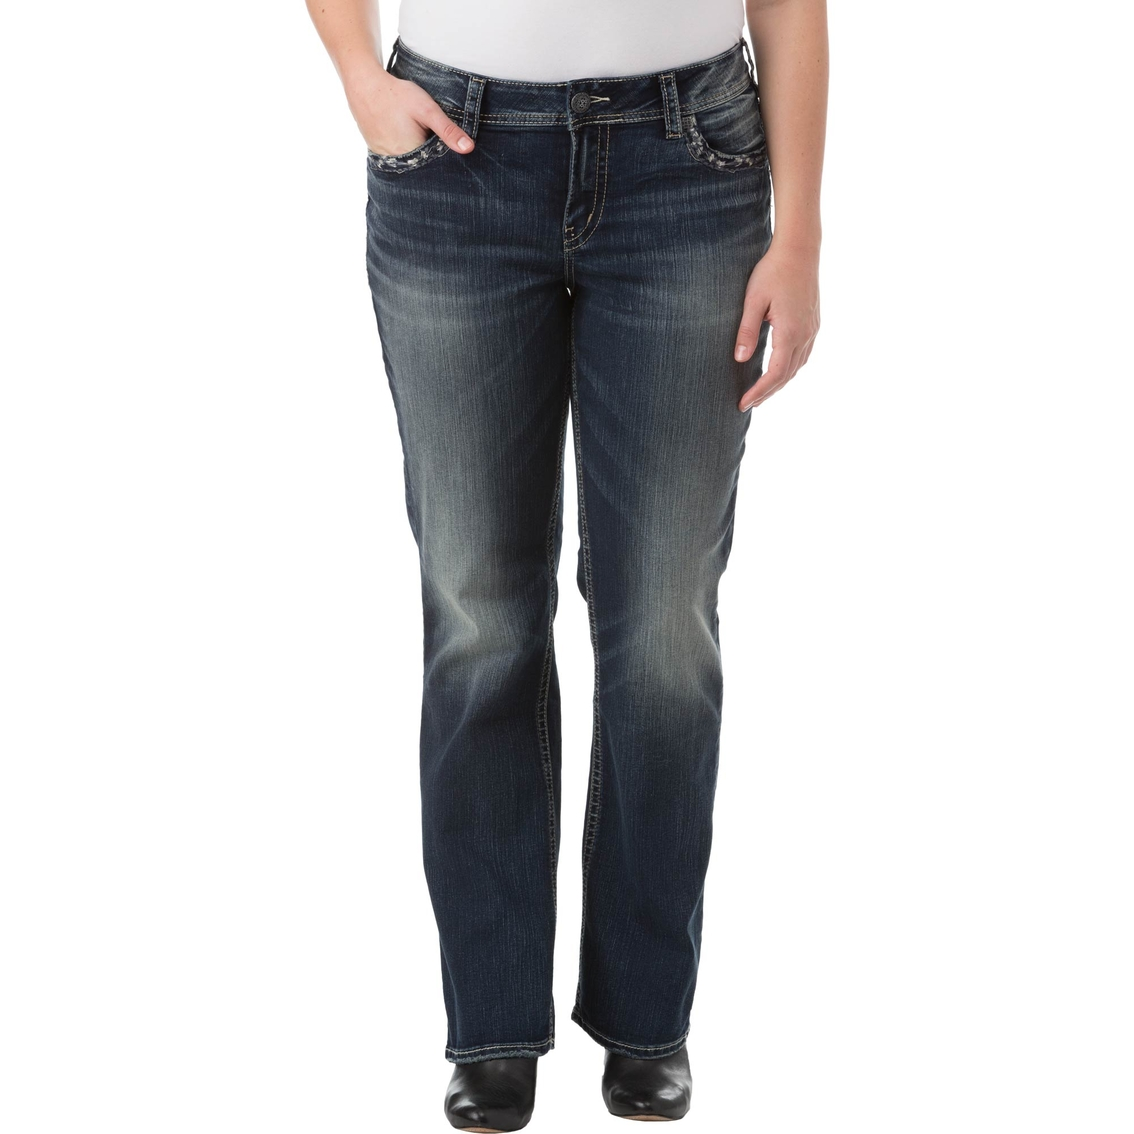 847f46cd144 Silver Jeans Plus Size Suki Mid Slim Bootcut Jeans